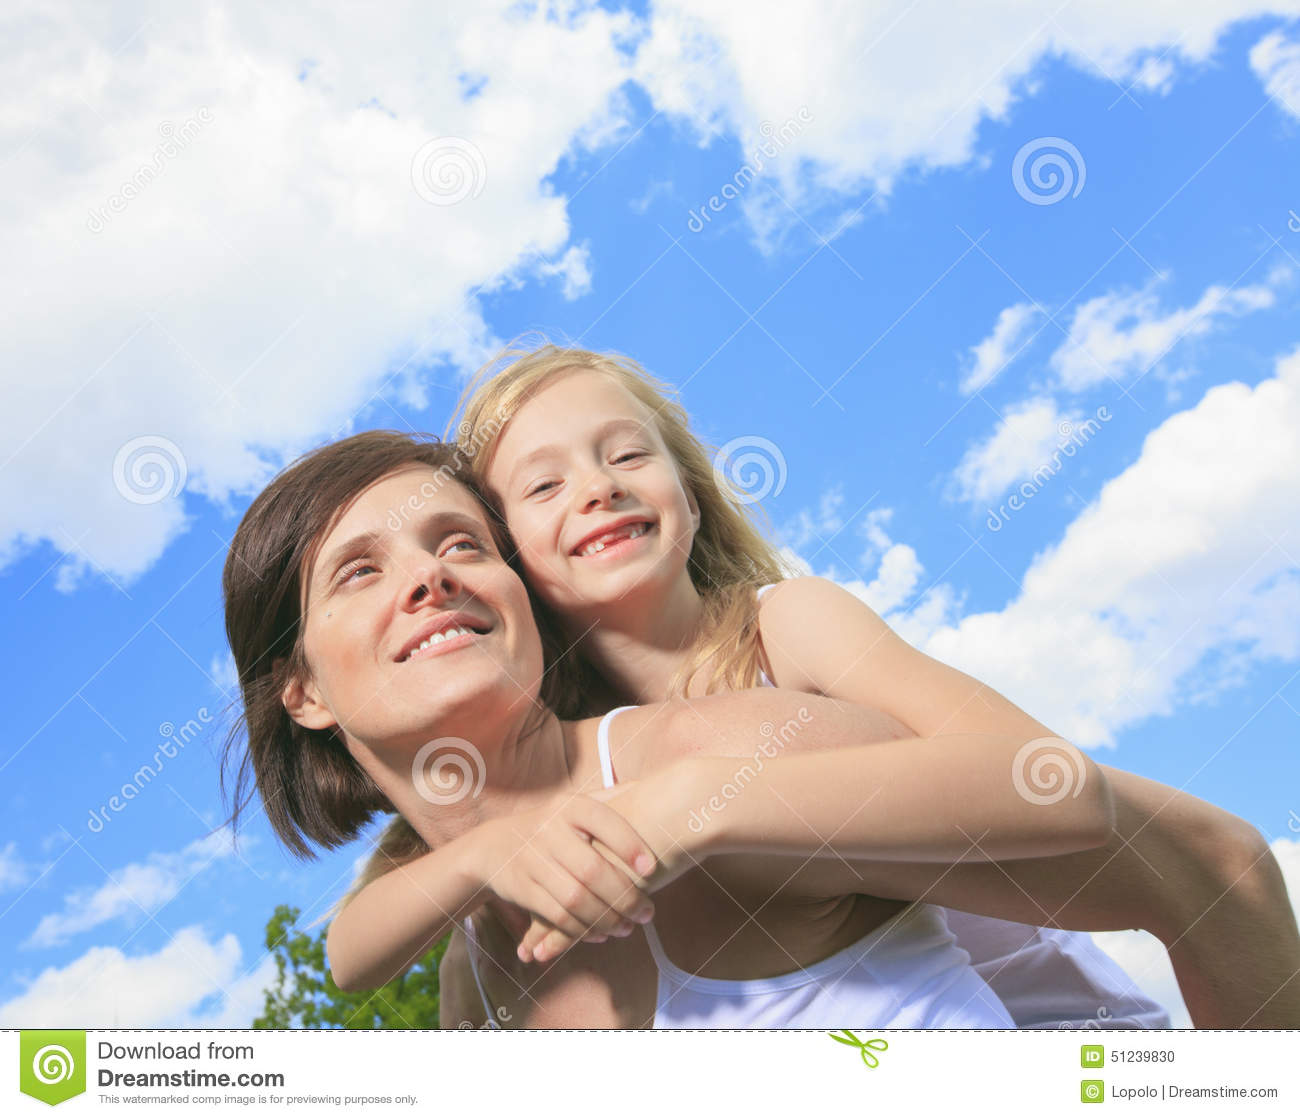 Mother Giving Her Daughter A Piggy Back Ride Stock Photo